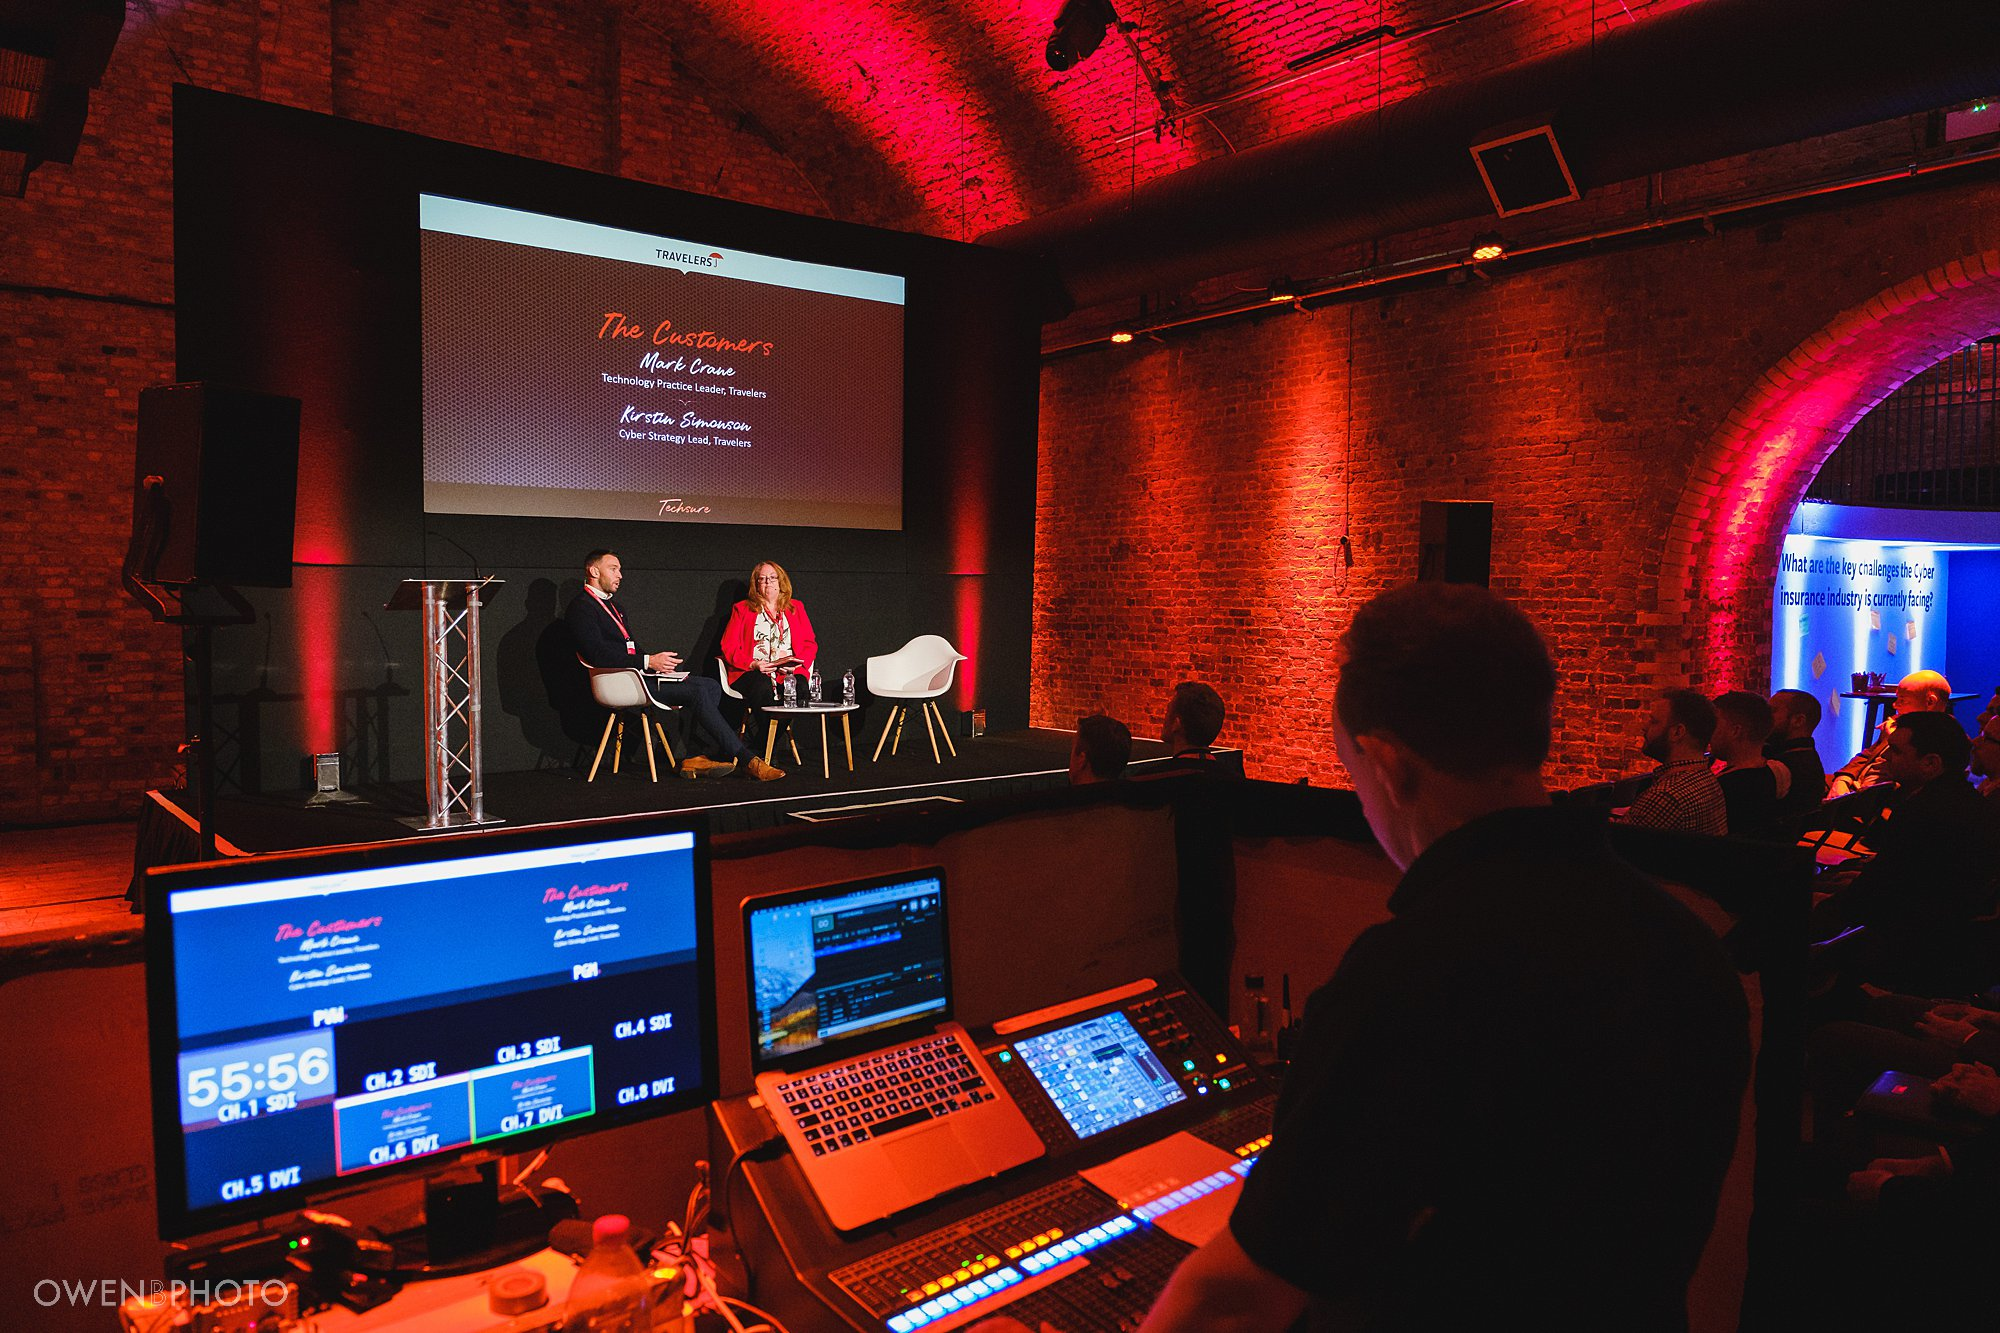 behind the scenes of a corporate conference at the steelyard in london